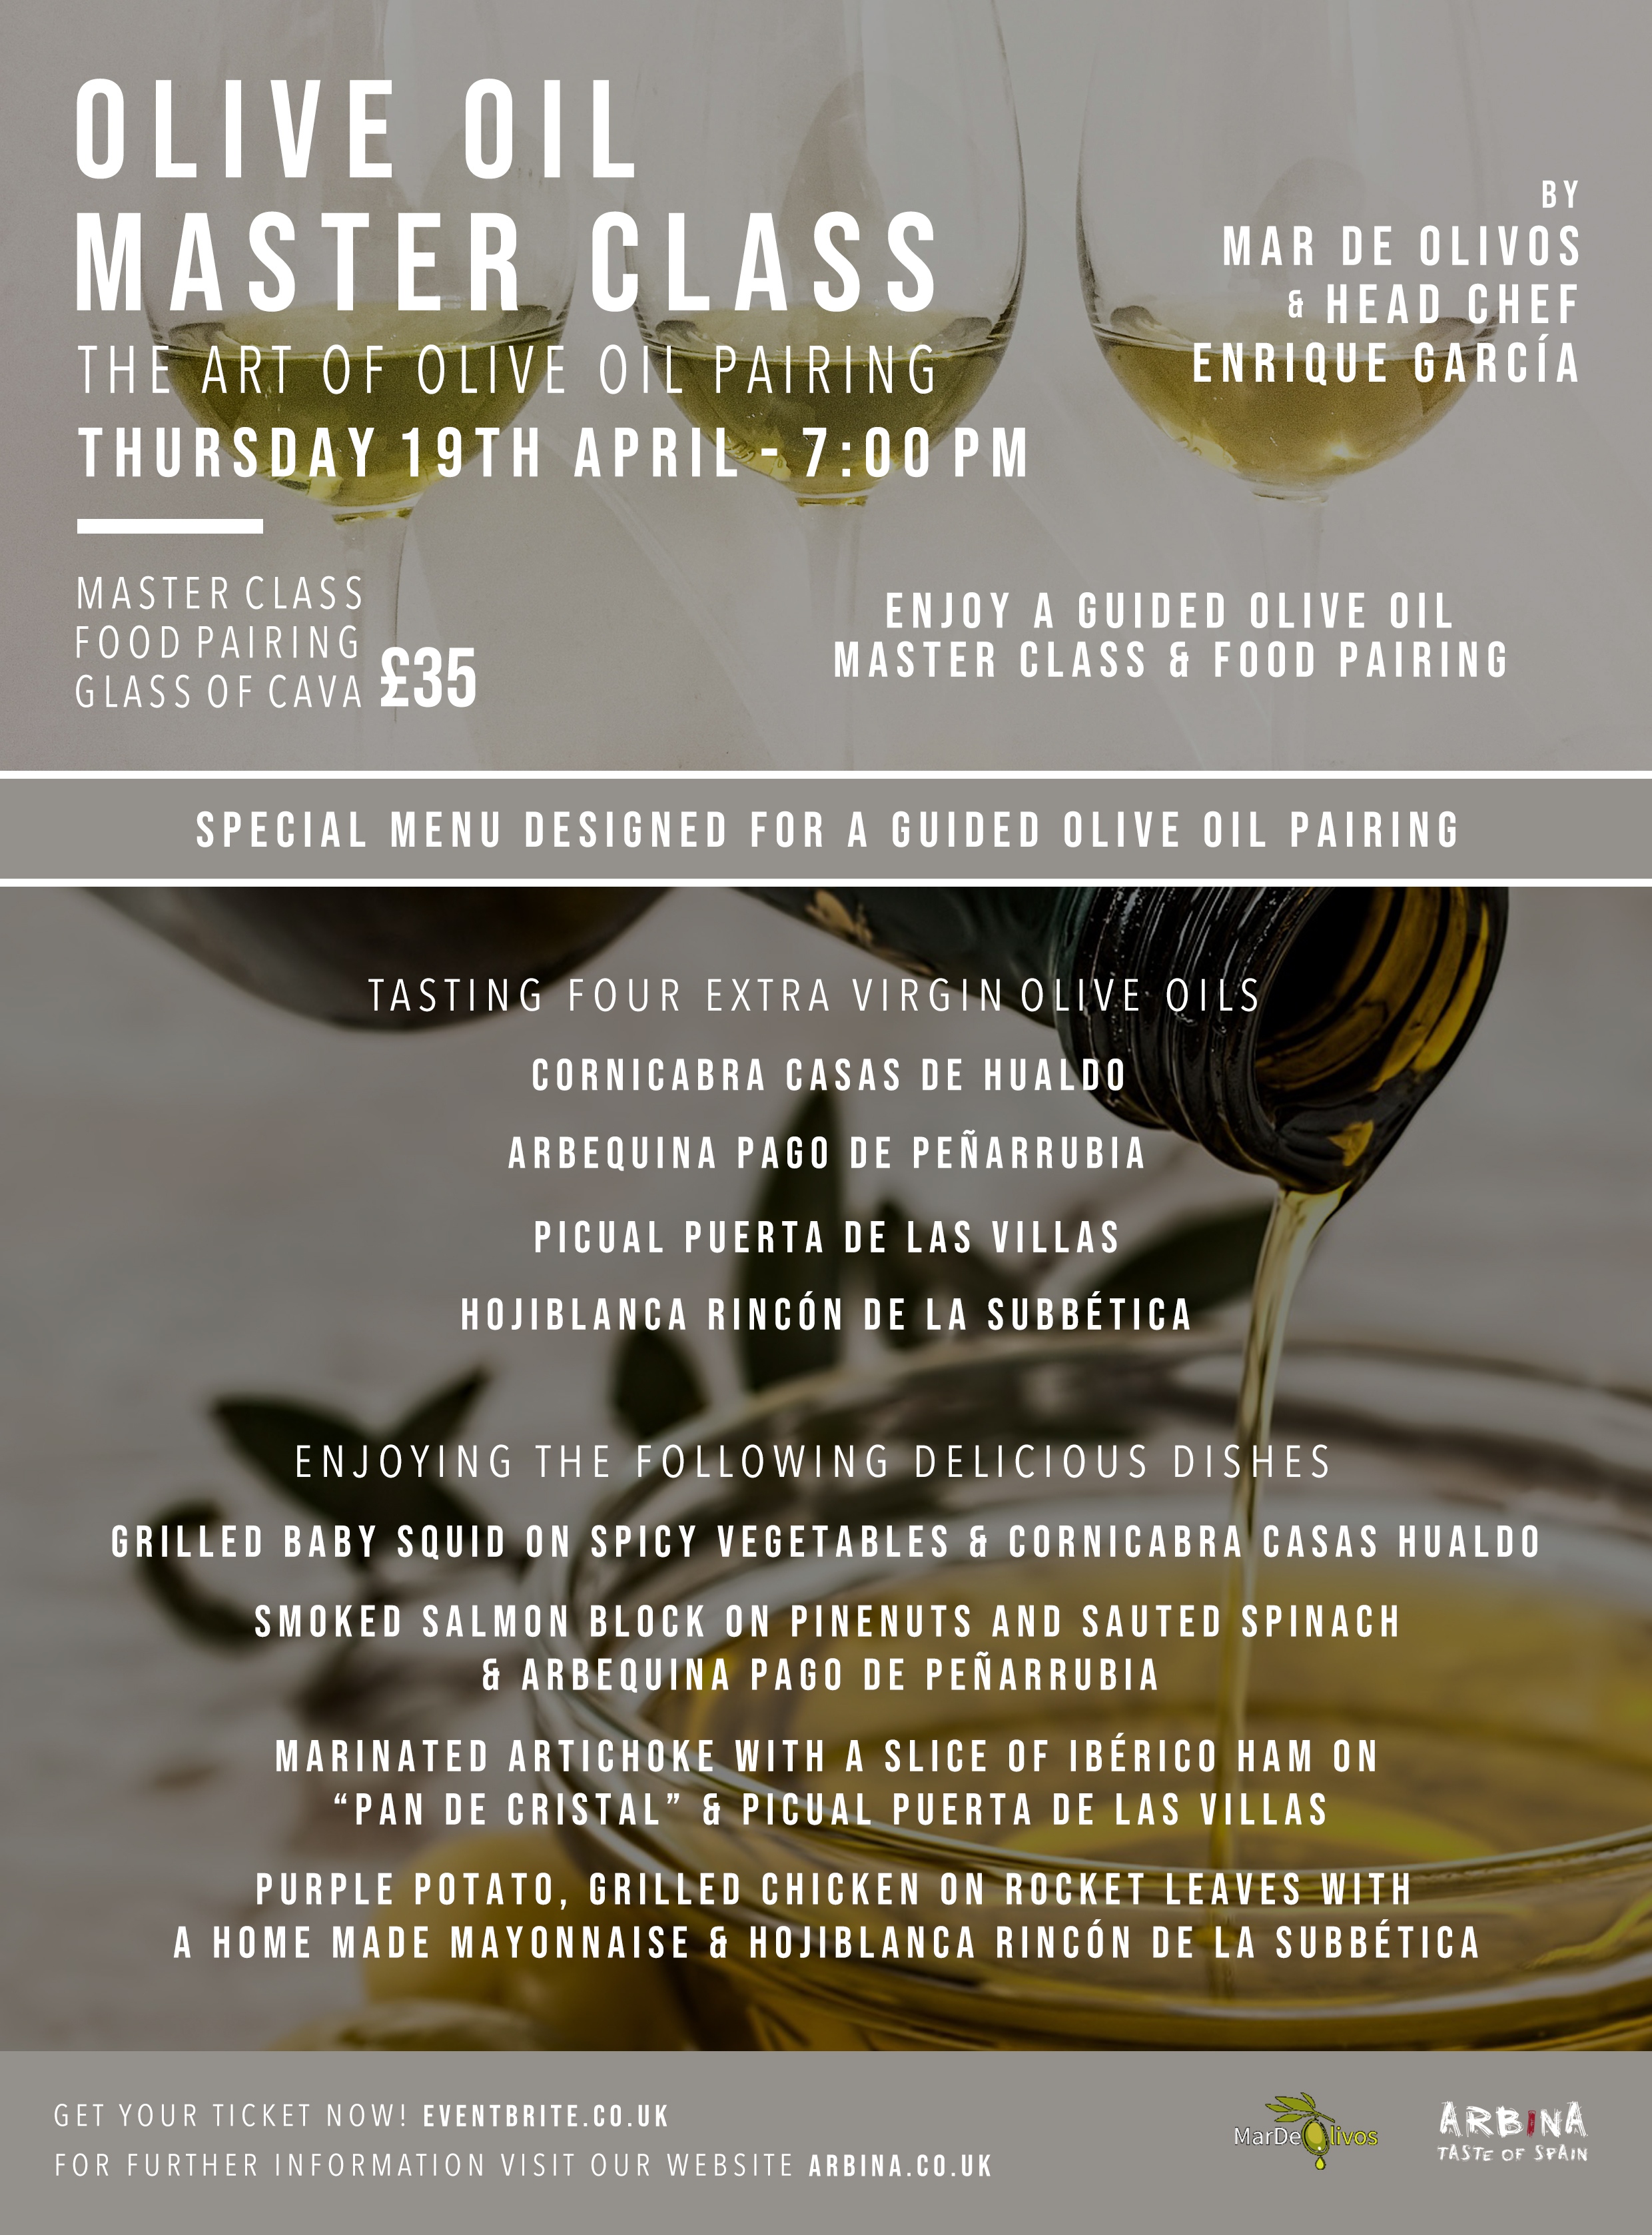 Guided-olive-oil-masterclass-and-food-pairing-evening-at-Arbina-restaurant